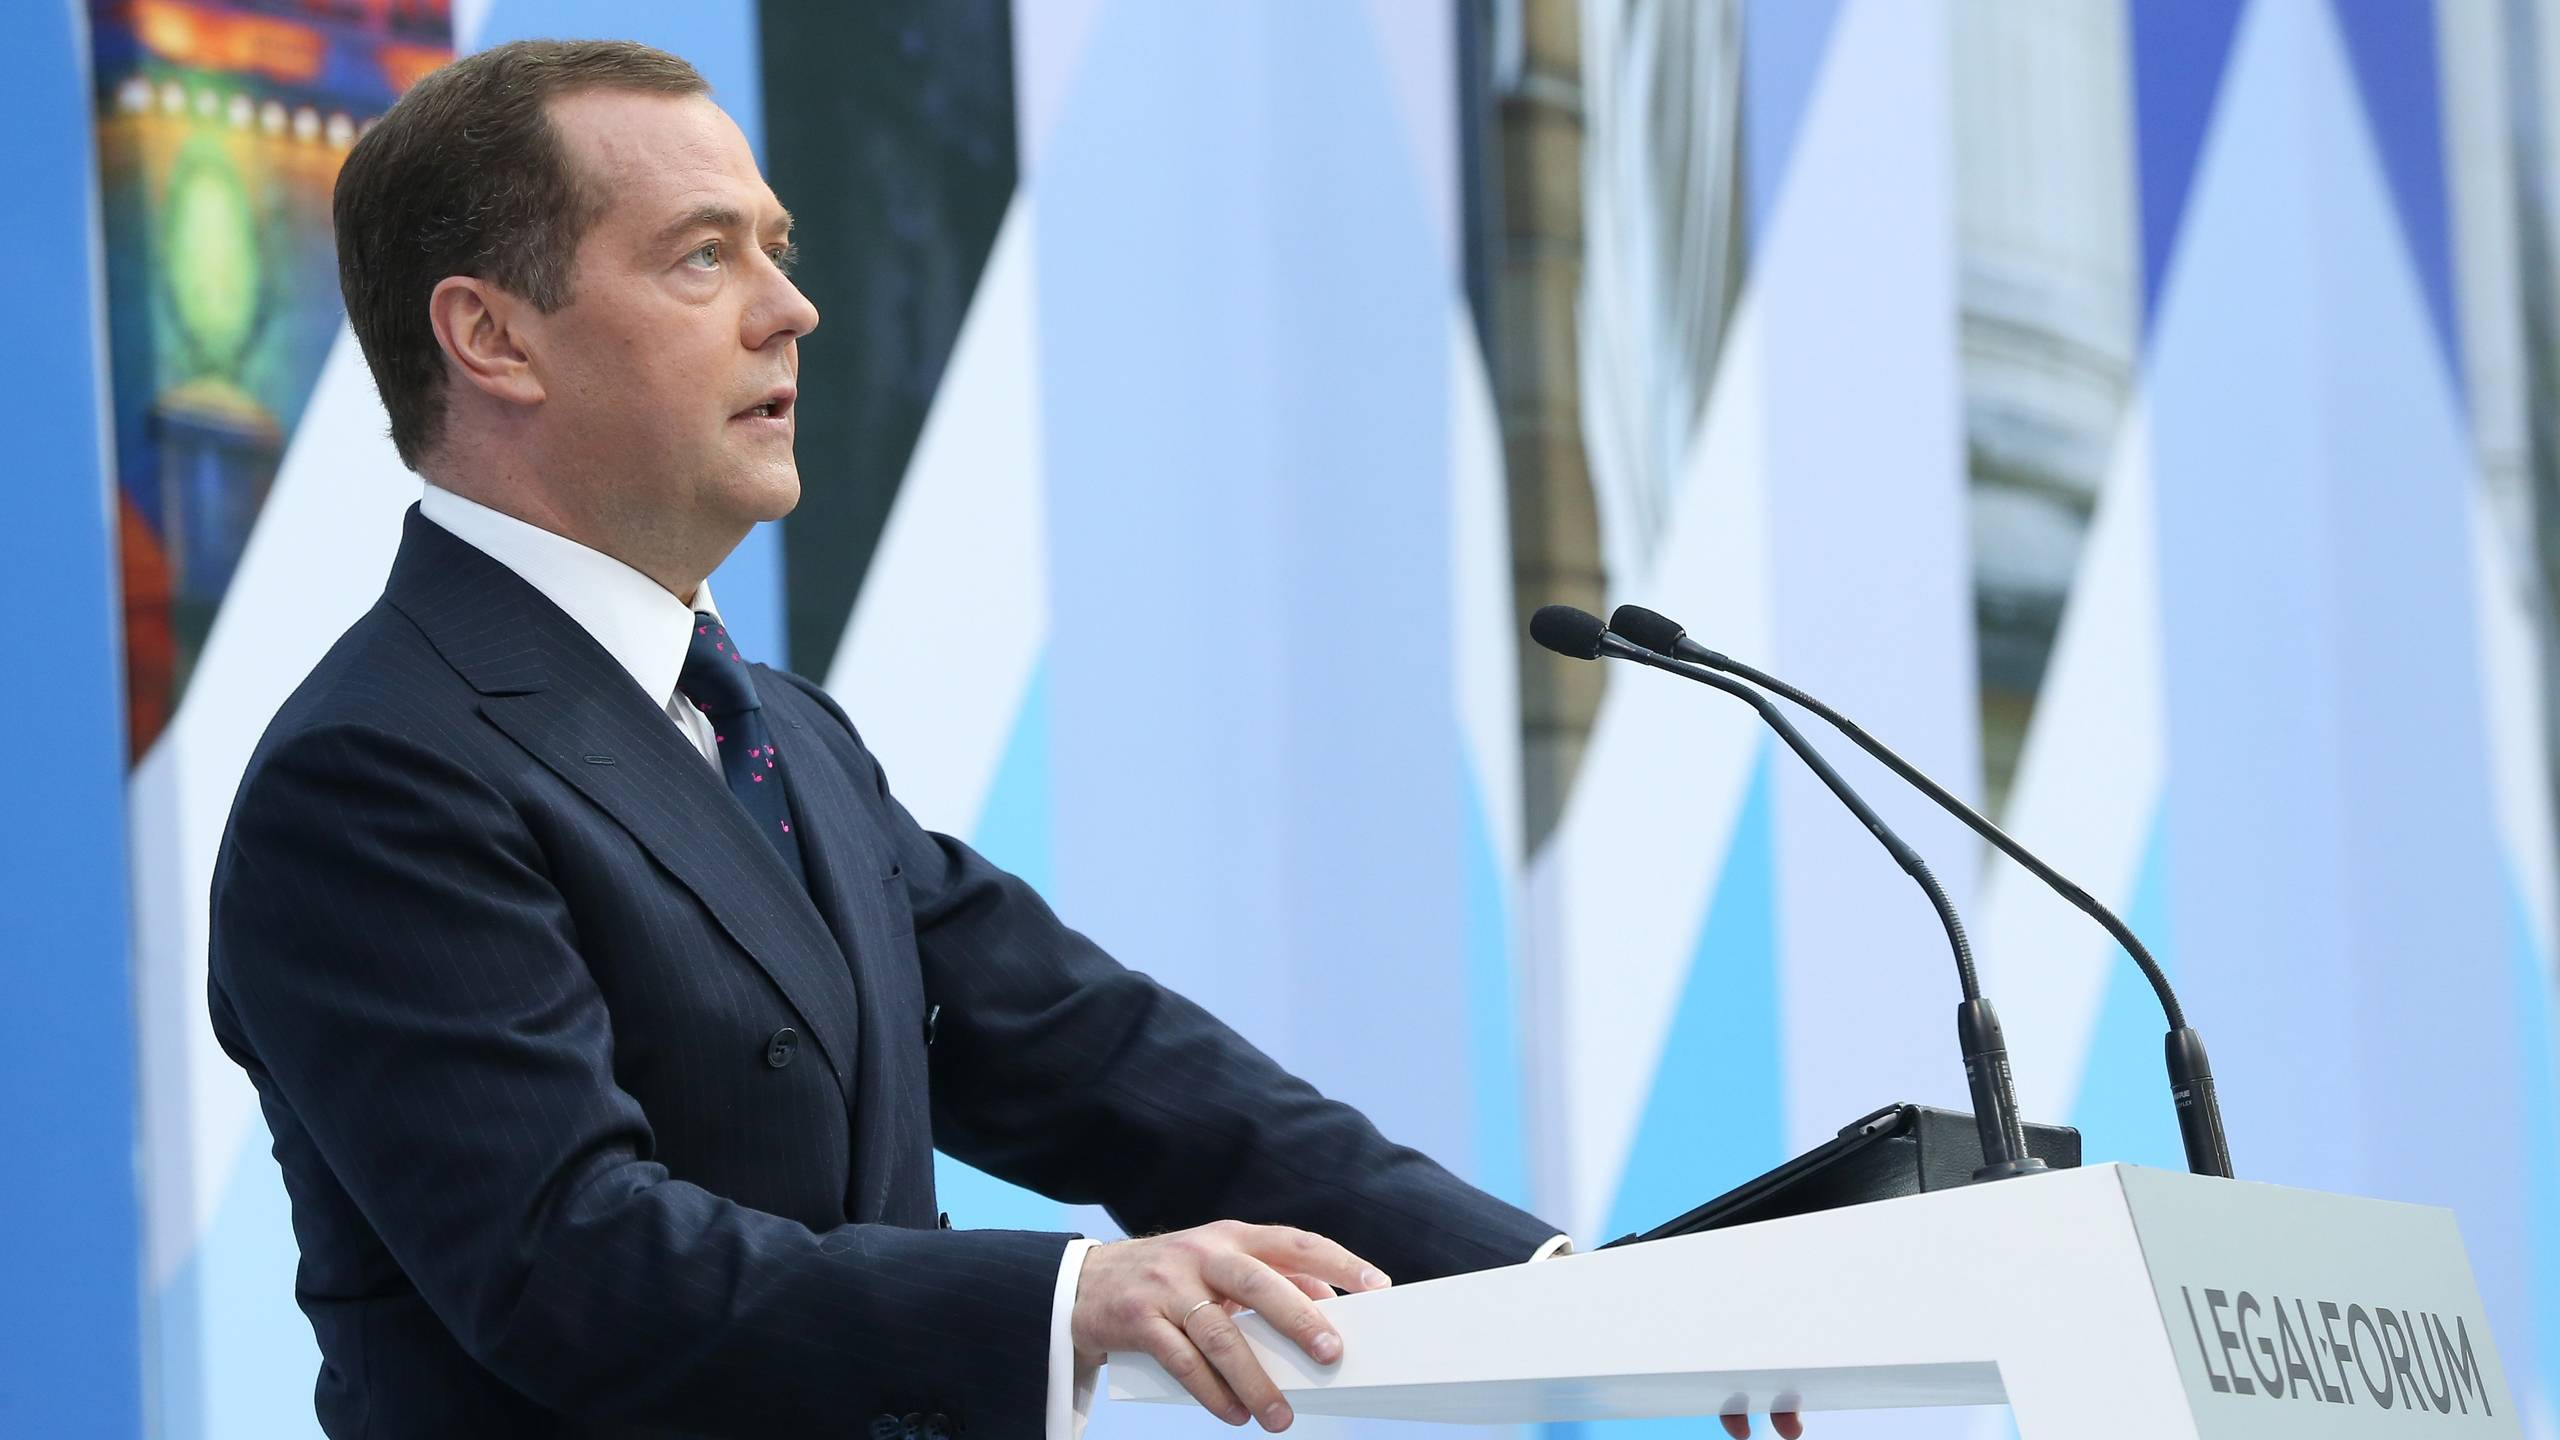 Medvedev said about the meaninglessness of dialogue with